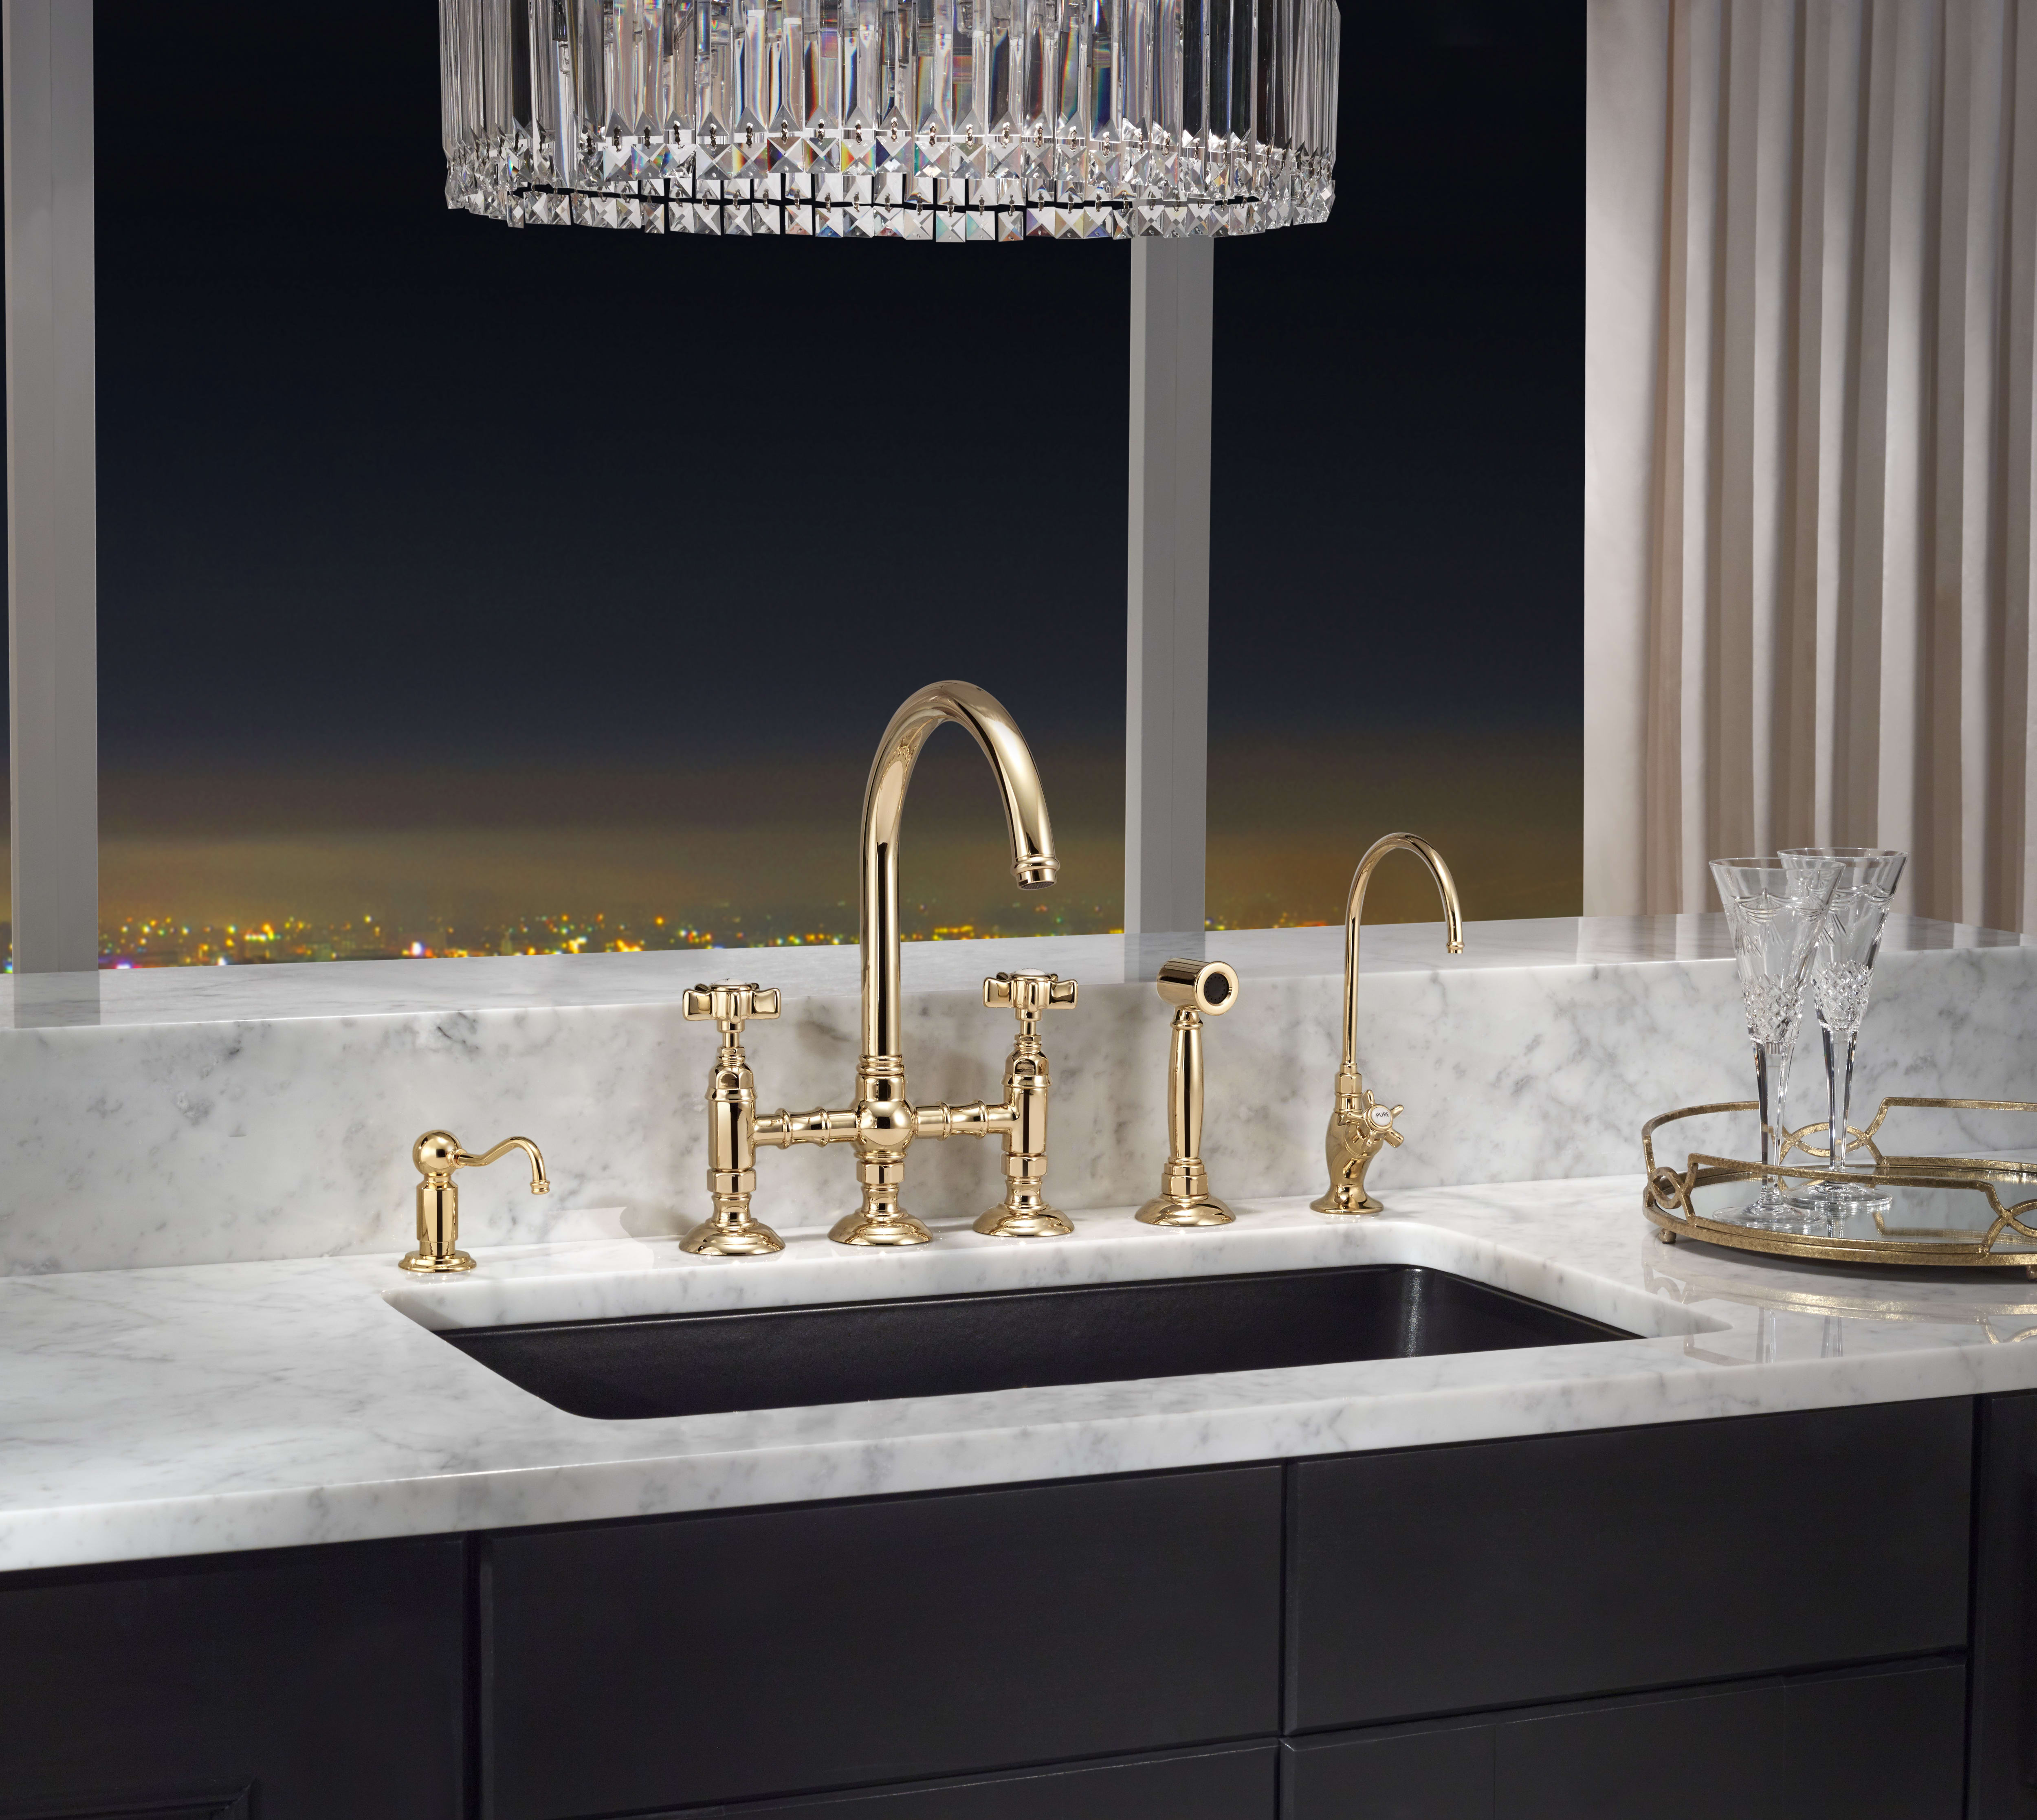 Rohl A1461lpwsib 2 Kitchen Faucets Italian Brass Touch On Kitchen Sink Faucets